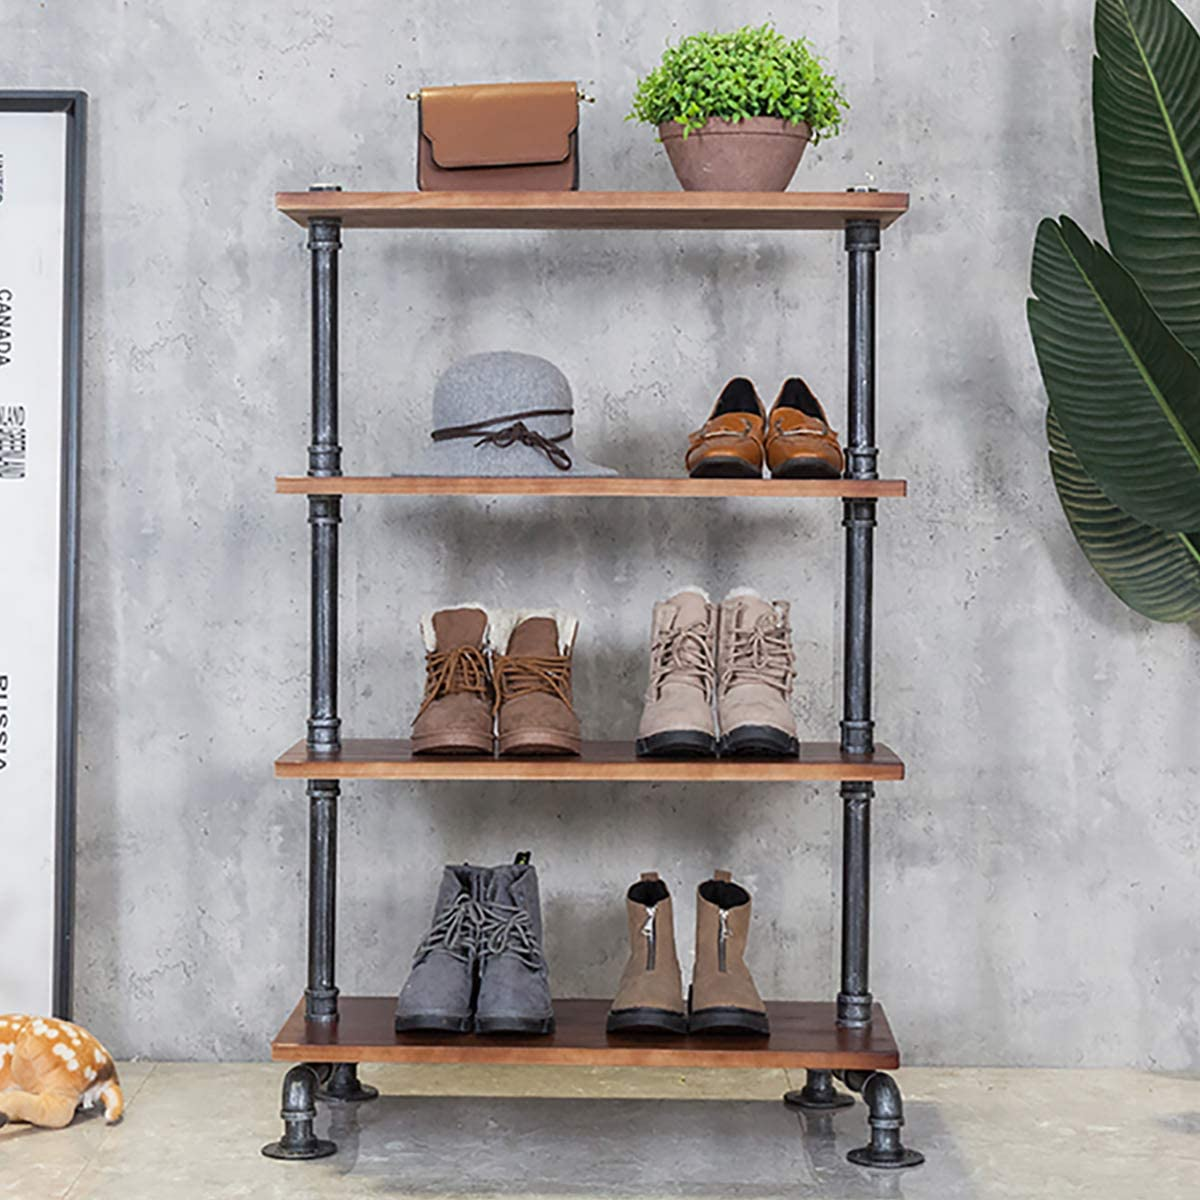 Industrial 4-Tier Pipe Wood Shelf Display Rack, Floor Shoe Organizer, Clothing Storage, Bag Holder, Bookshelf, Tool Holder, for Home/Shop/Office 27.6'' x 11.8'' x 43.3''